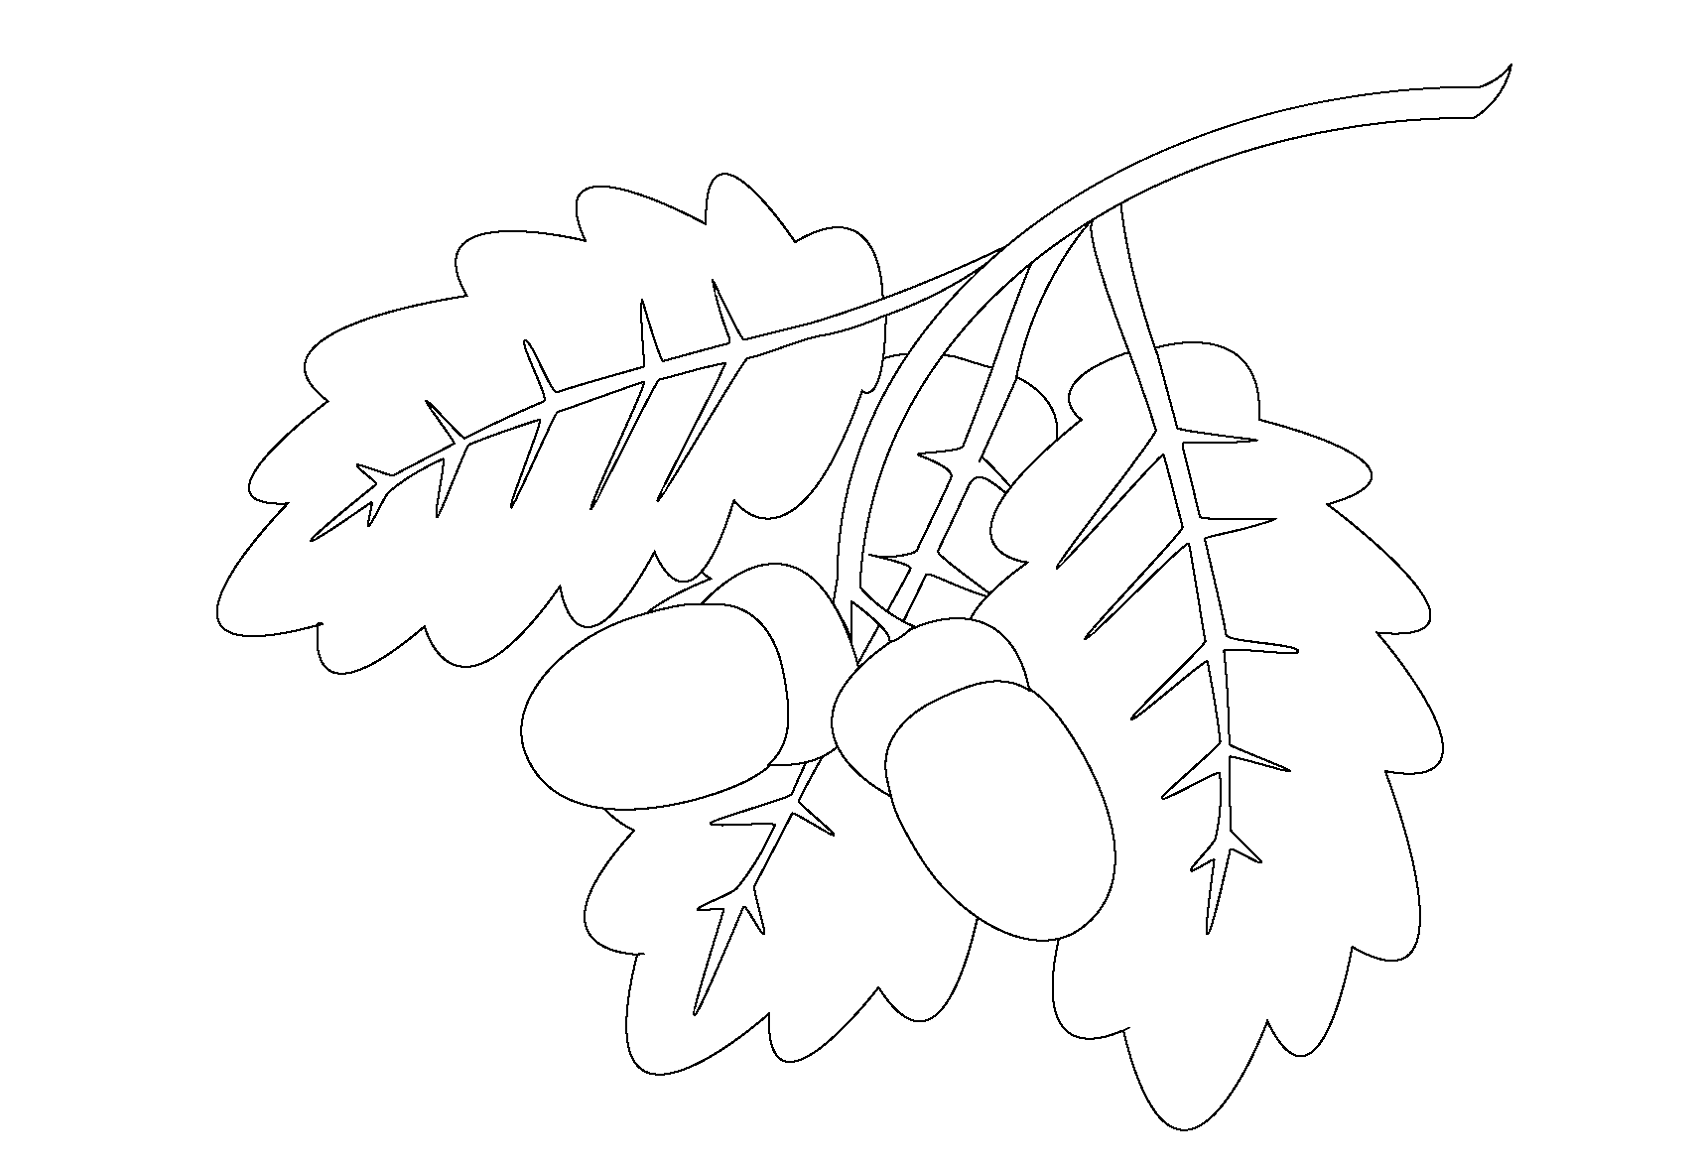 coloring pages oak leaf - photo#19